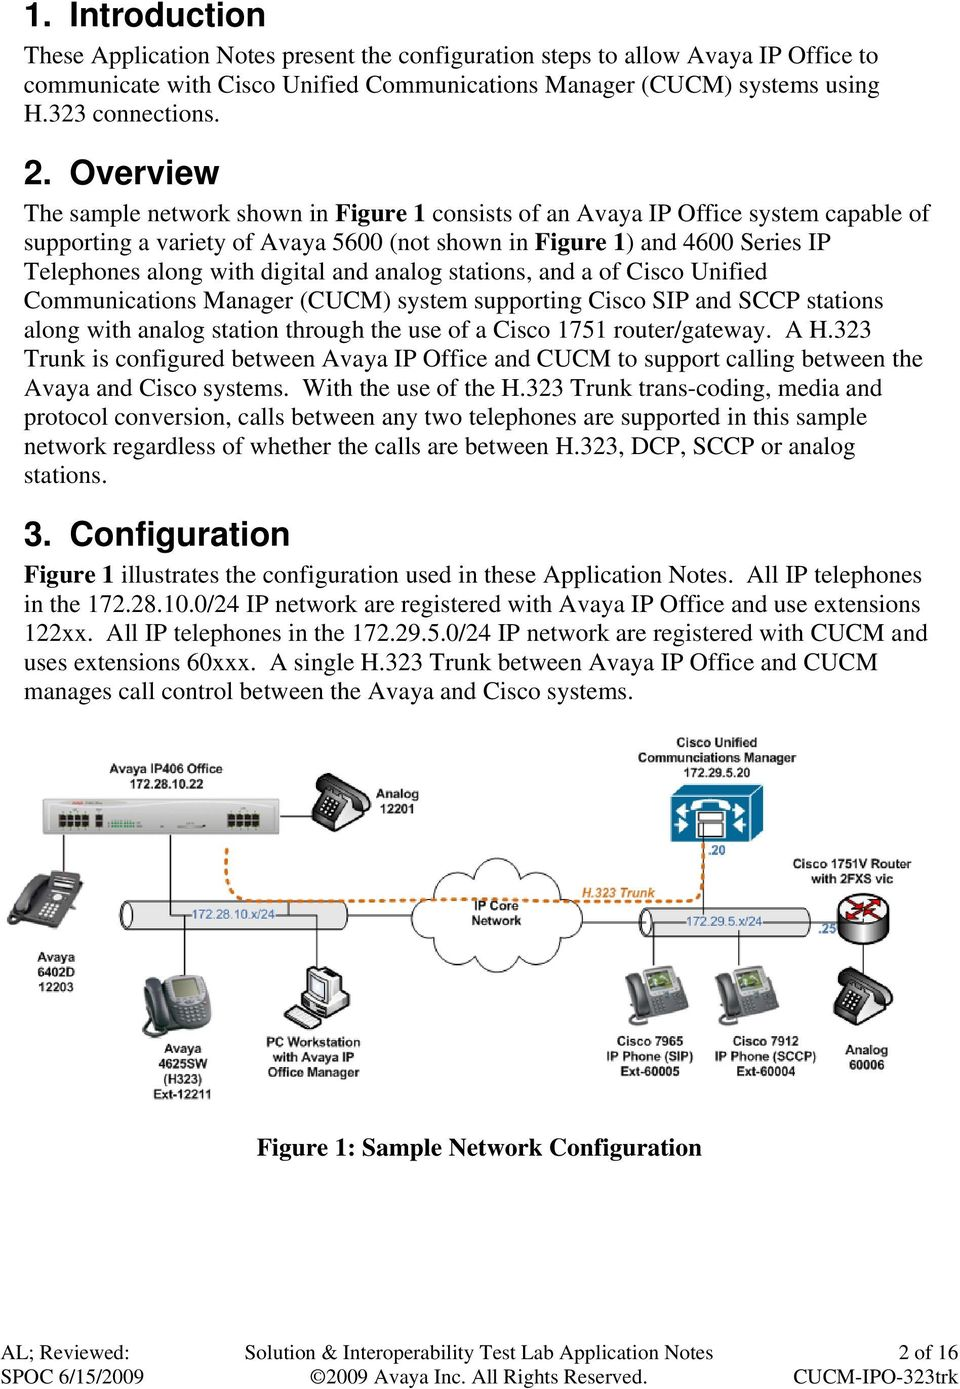 digital and analog stations, and a of Cisco Unified Communications Manager (CUCM) system supporting Cisco SIP and SCCP stations along with analog station through the use of a Cisco 1751